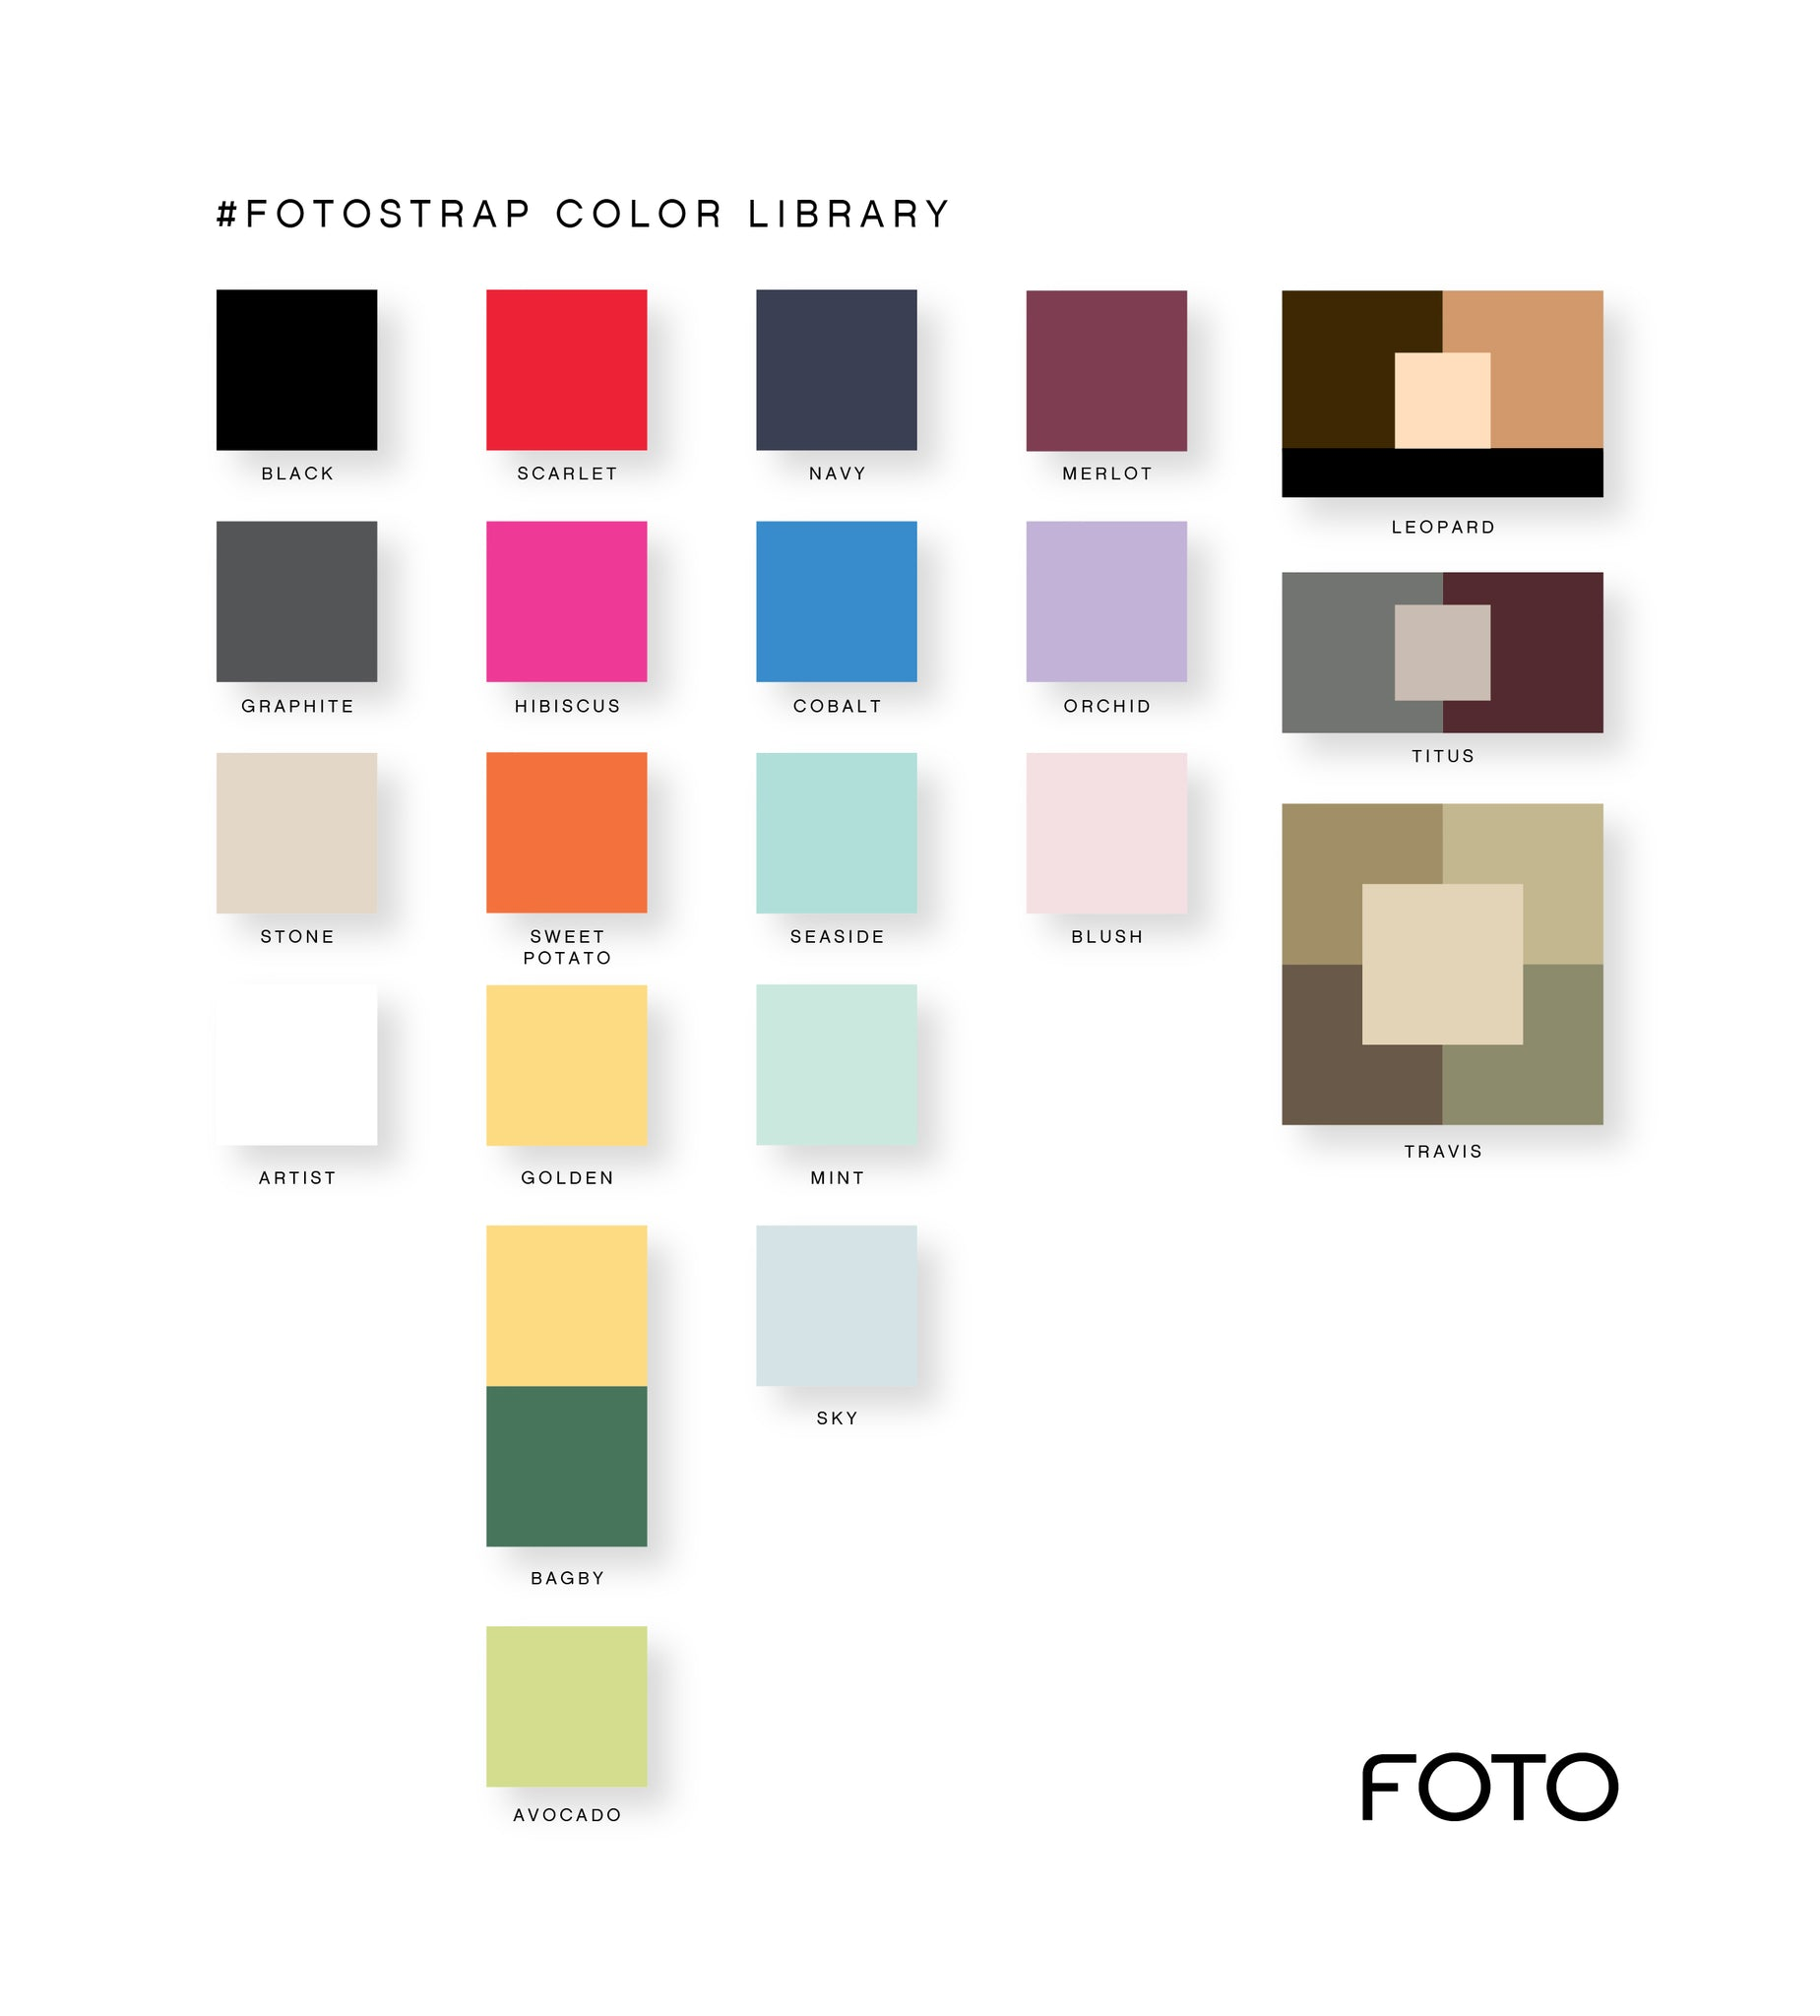 The Power of Color and What Your Color Says About YOU | FOTO Blog